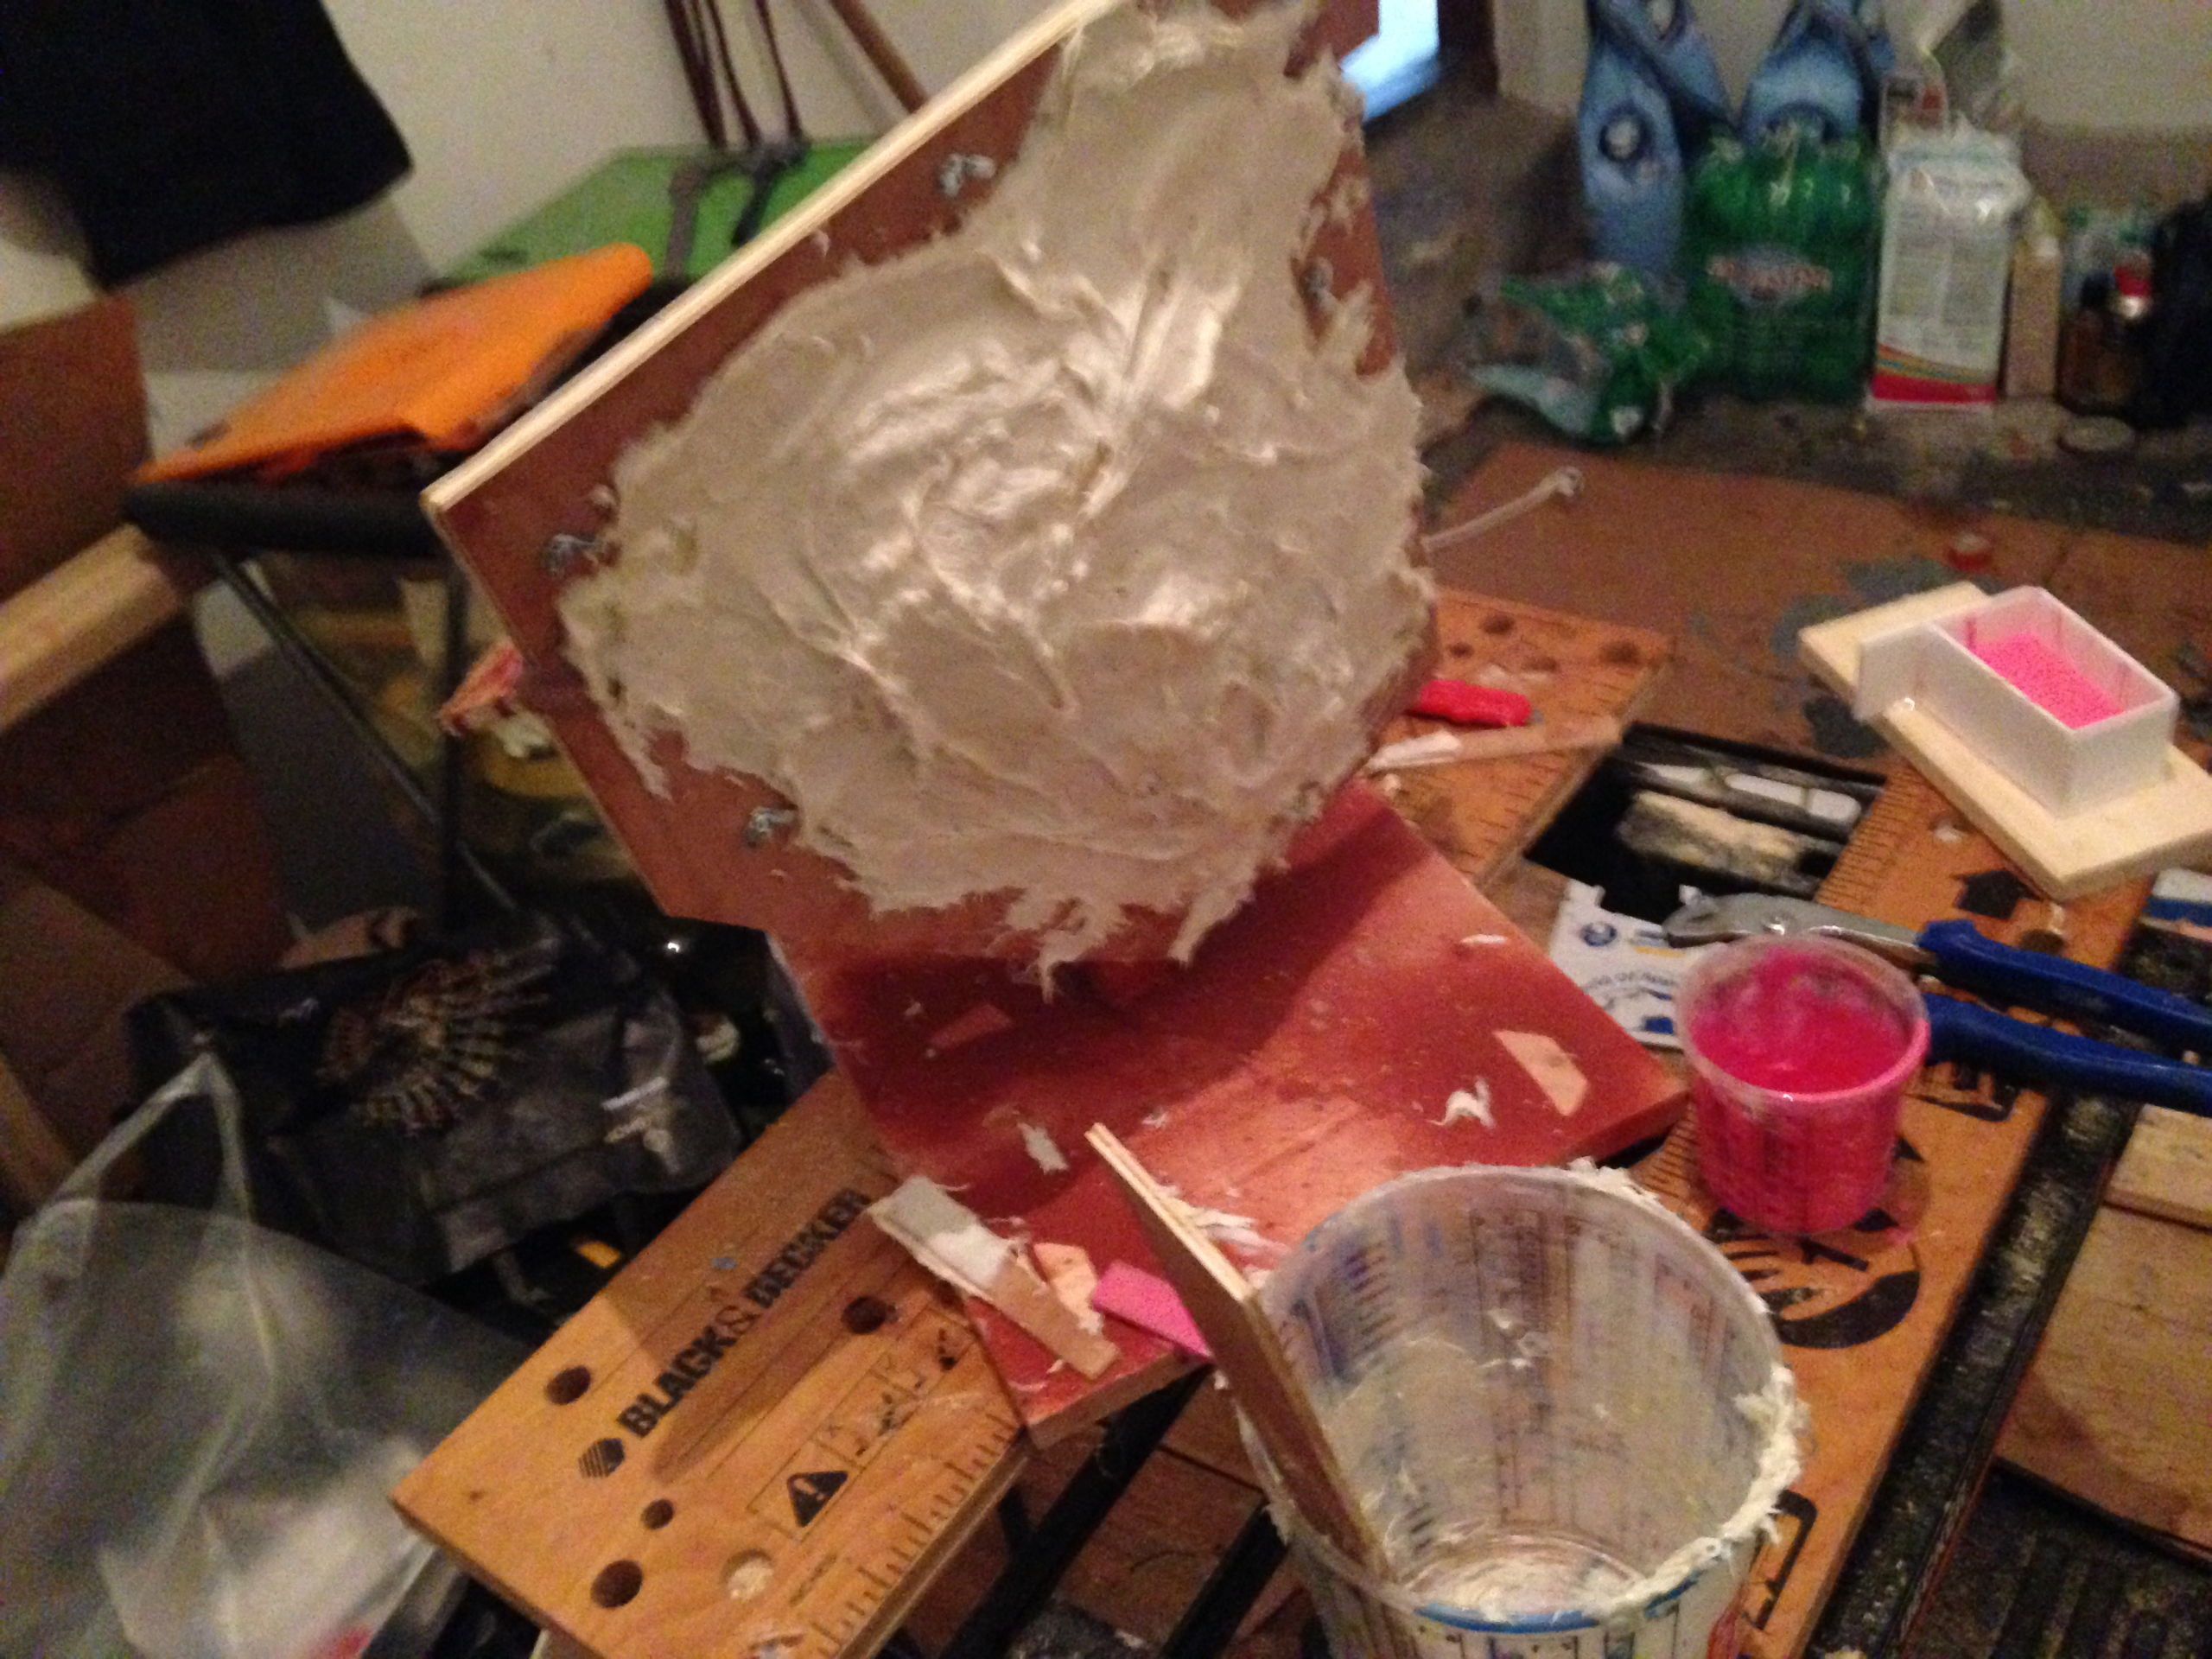 Making the mother mold, the hard shell that goes around the silicone mold, to keep its shape once emptied